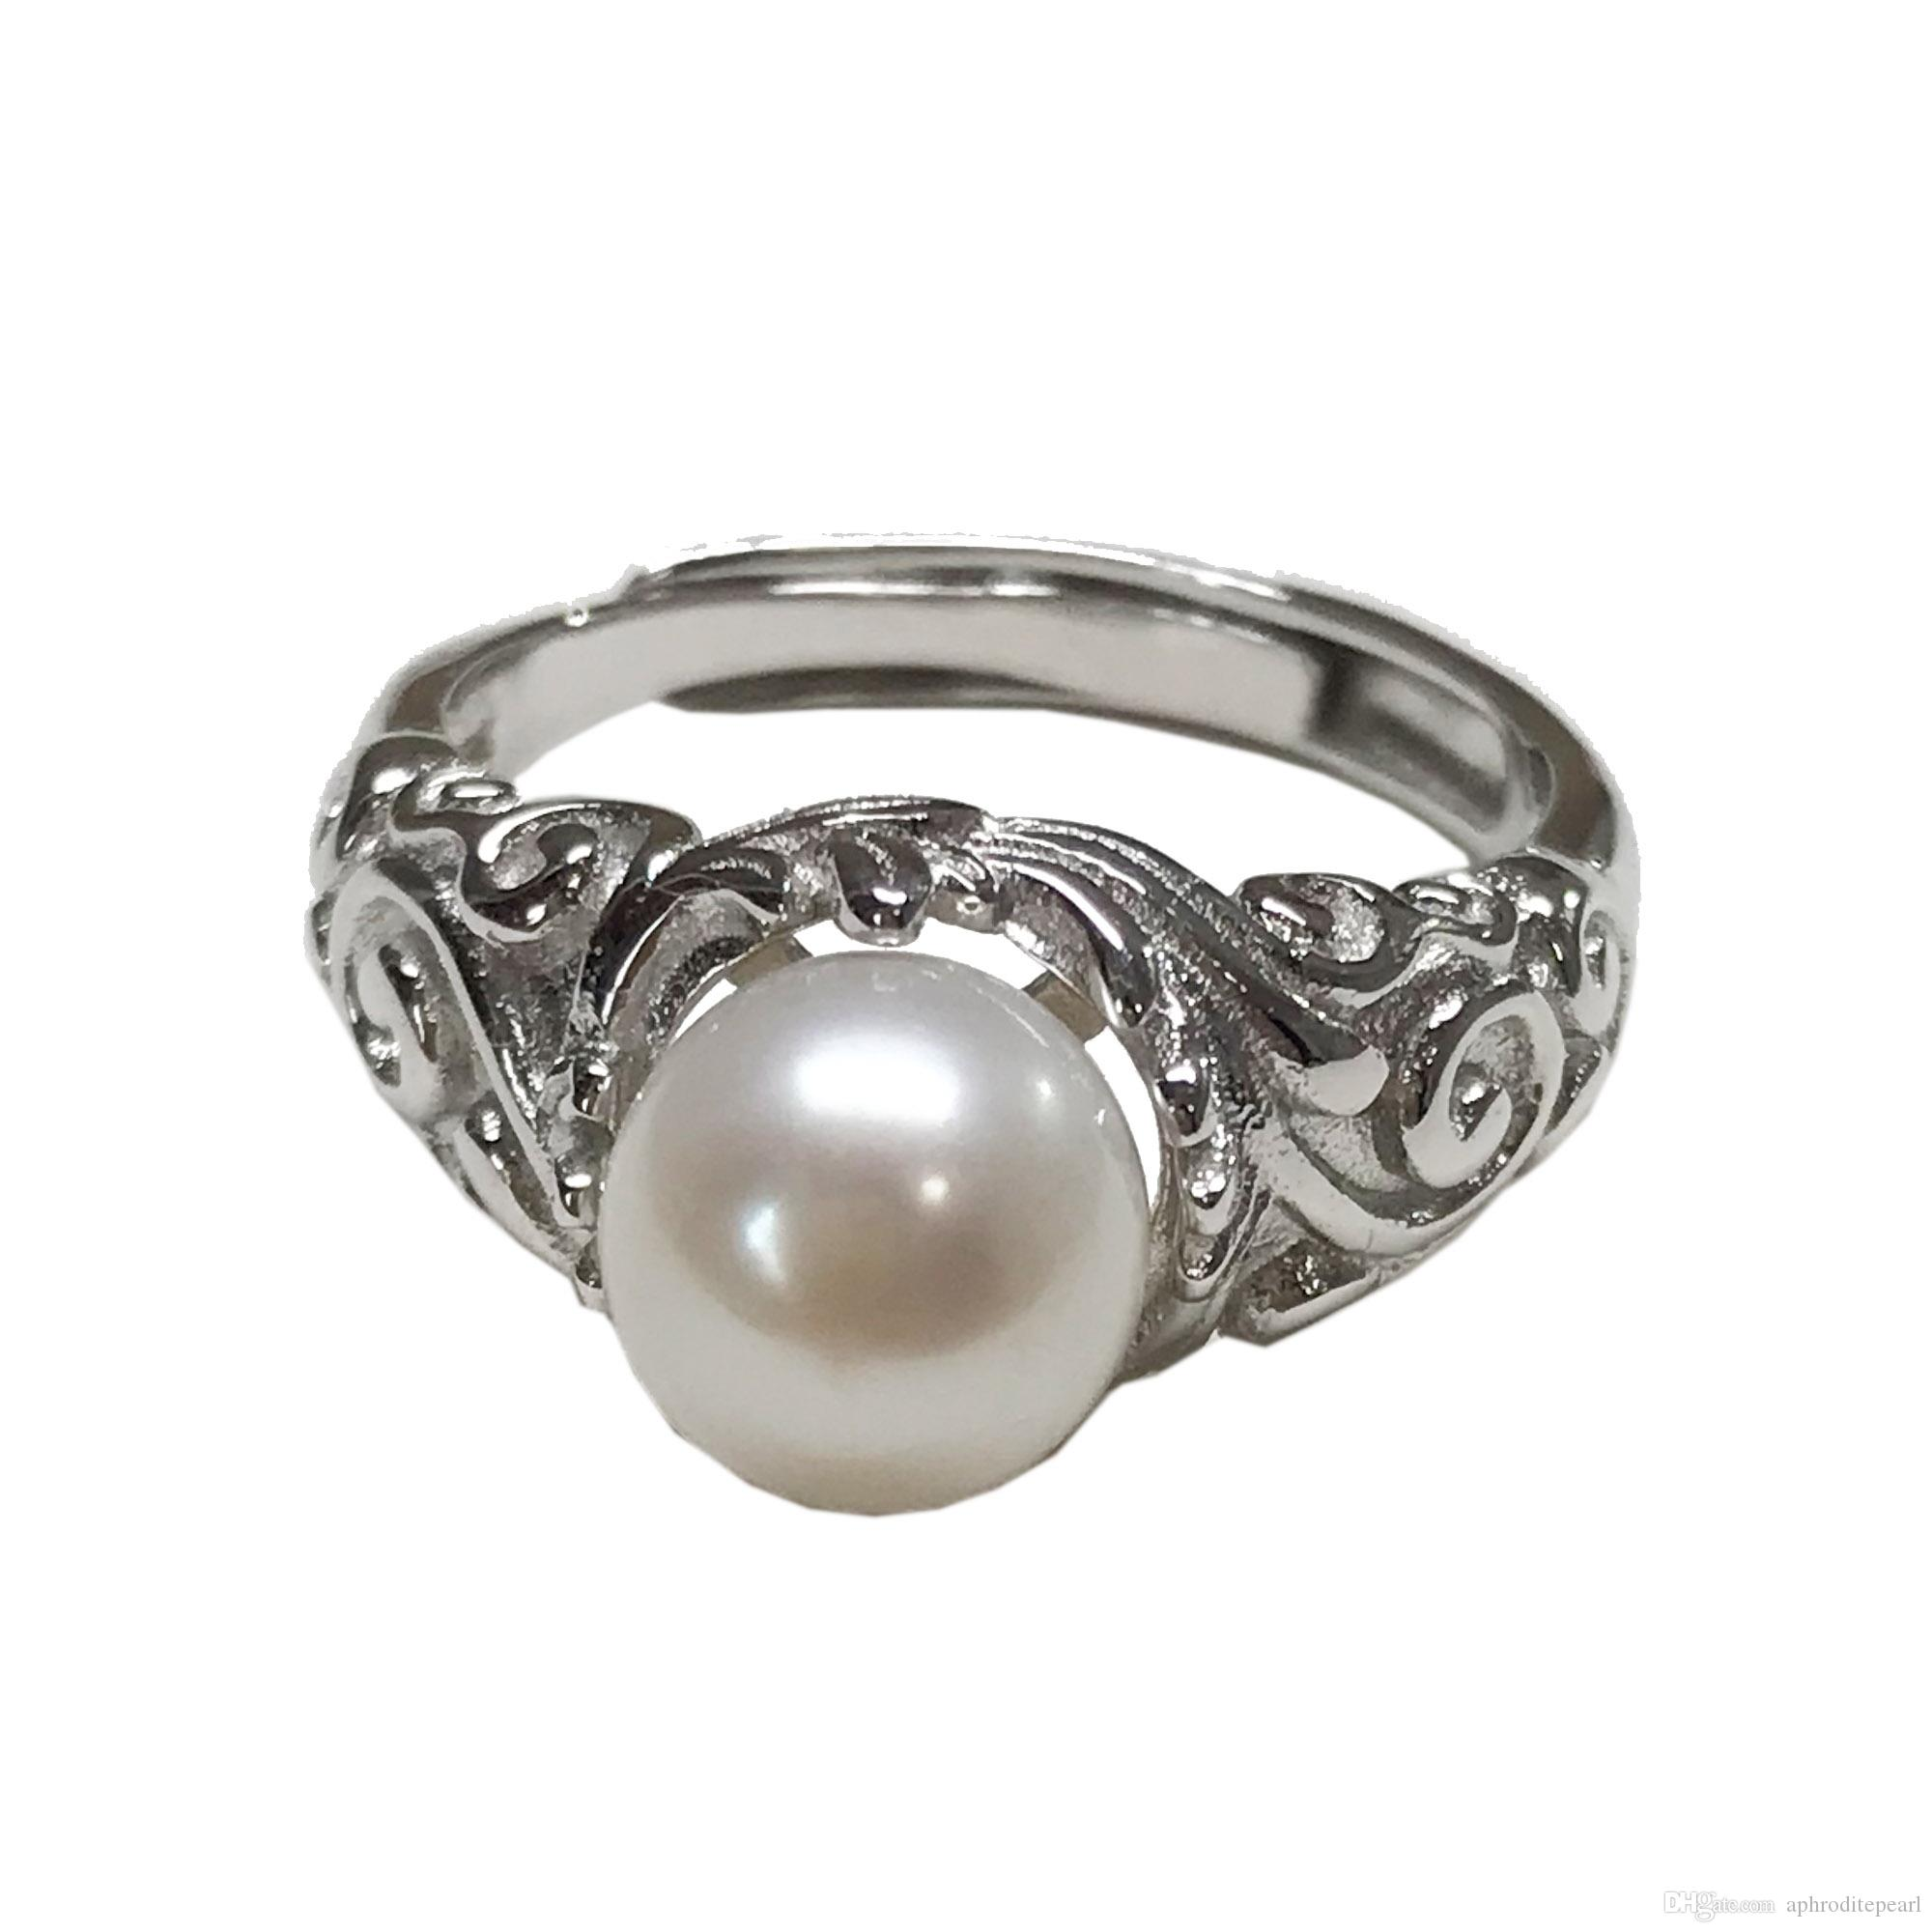 1pc solid sterling silver ring setting, luxury vintage ring mounting, ring blank without pearl, jewelry DIY, gift DIY